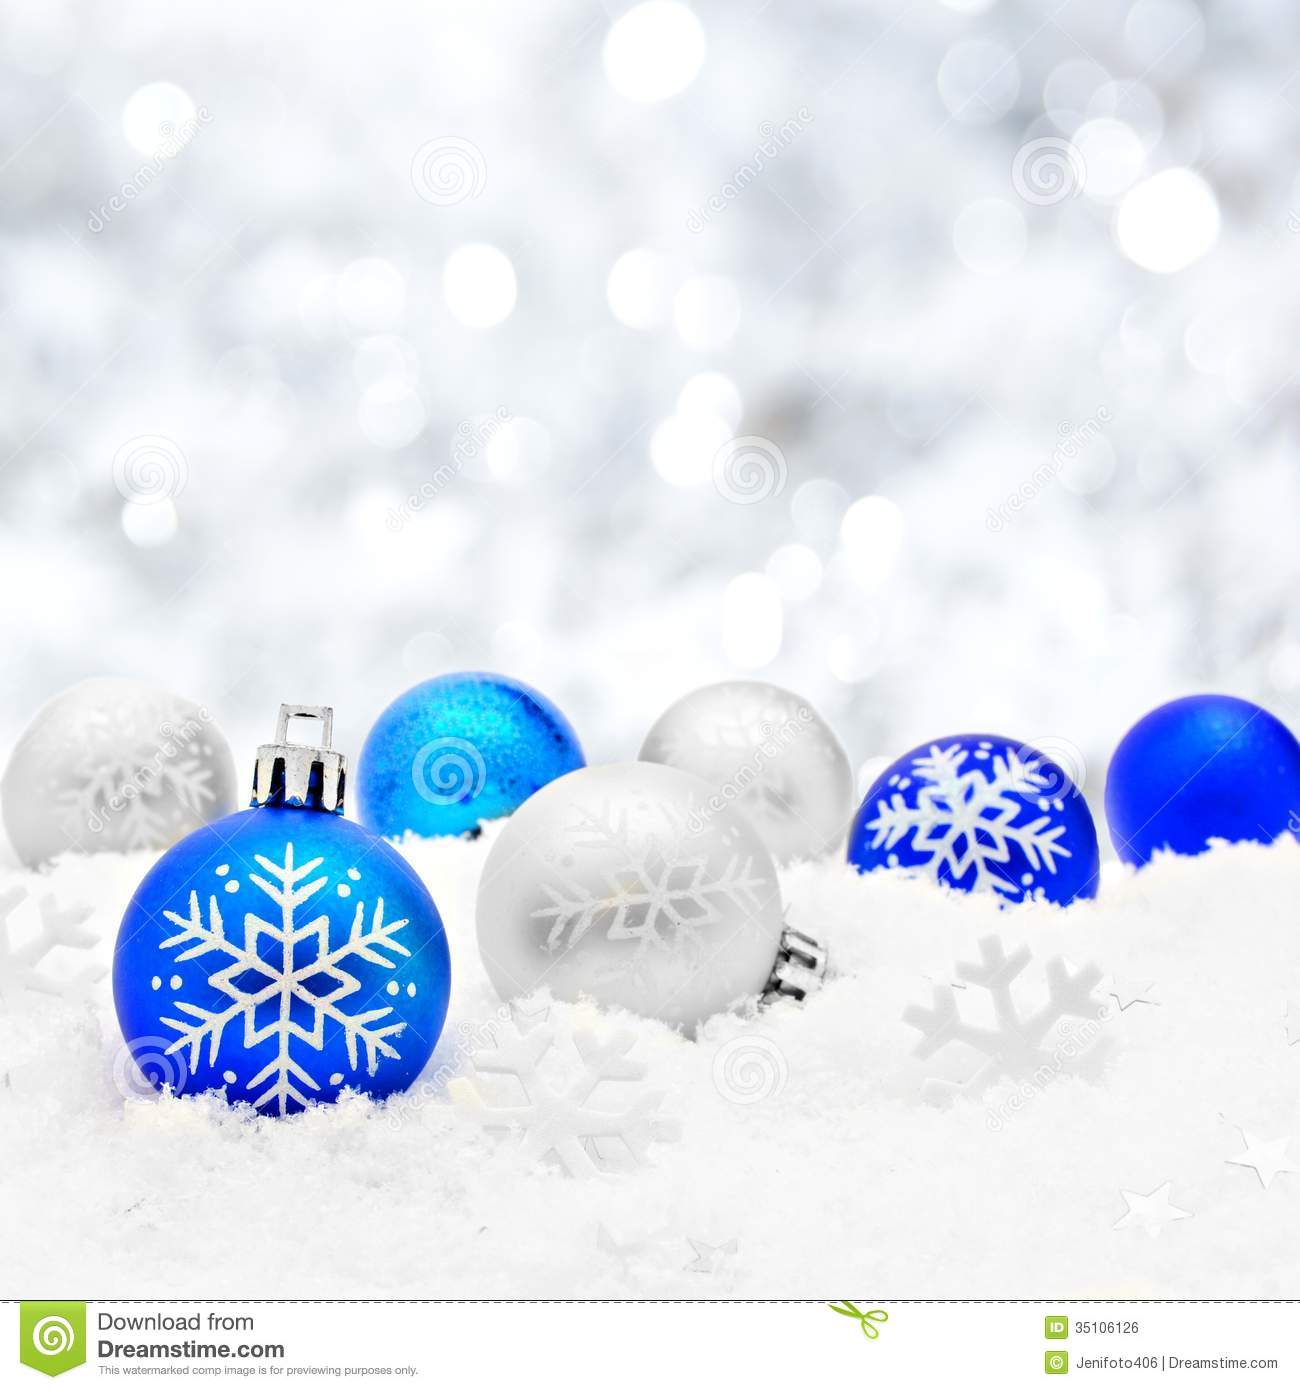 Christmas Scene Royalty Free Stock Image - Image: 35106126